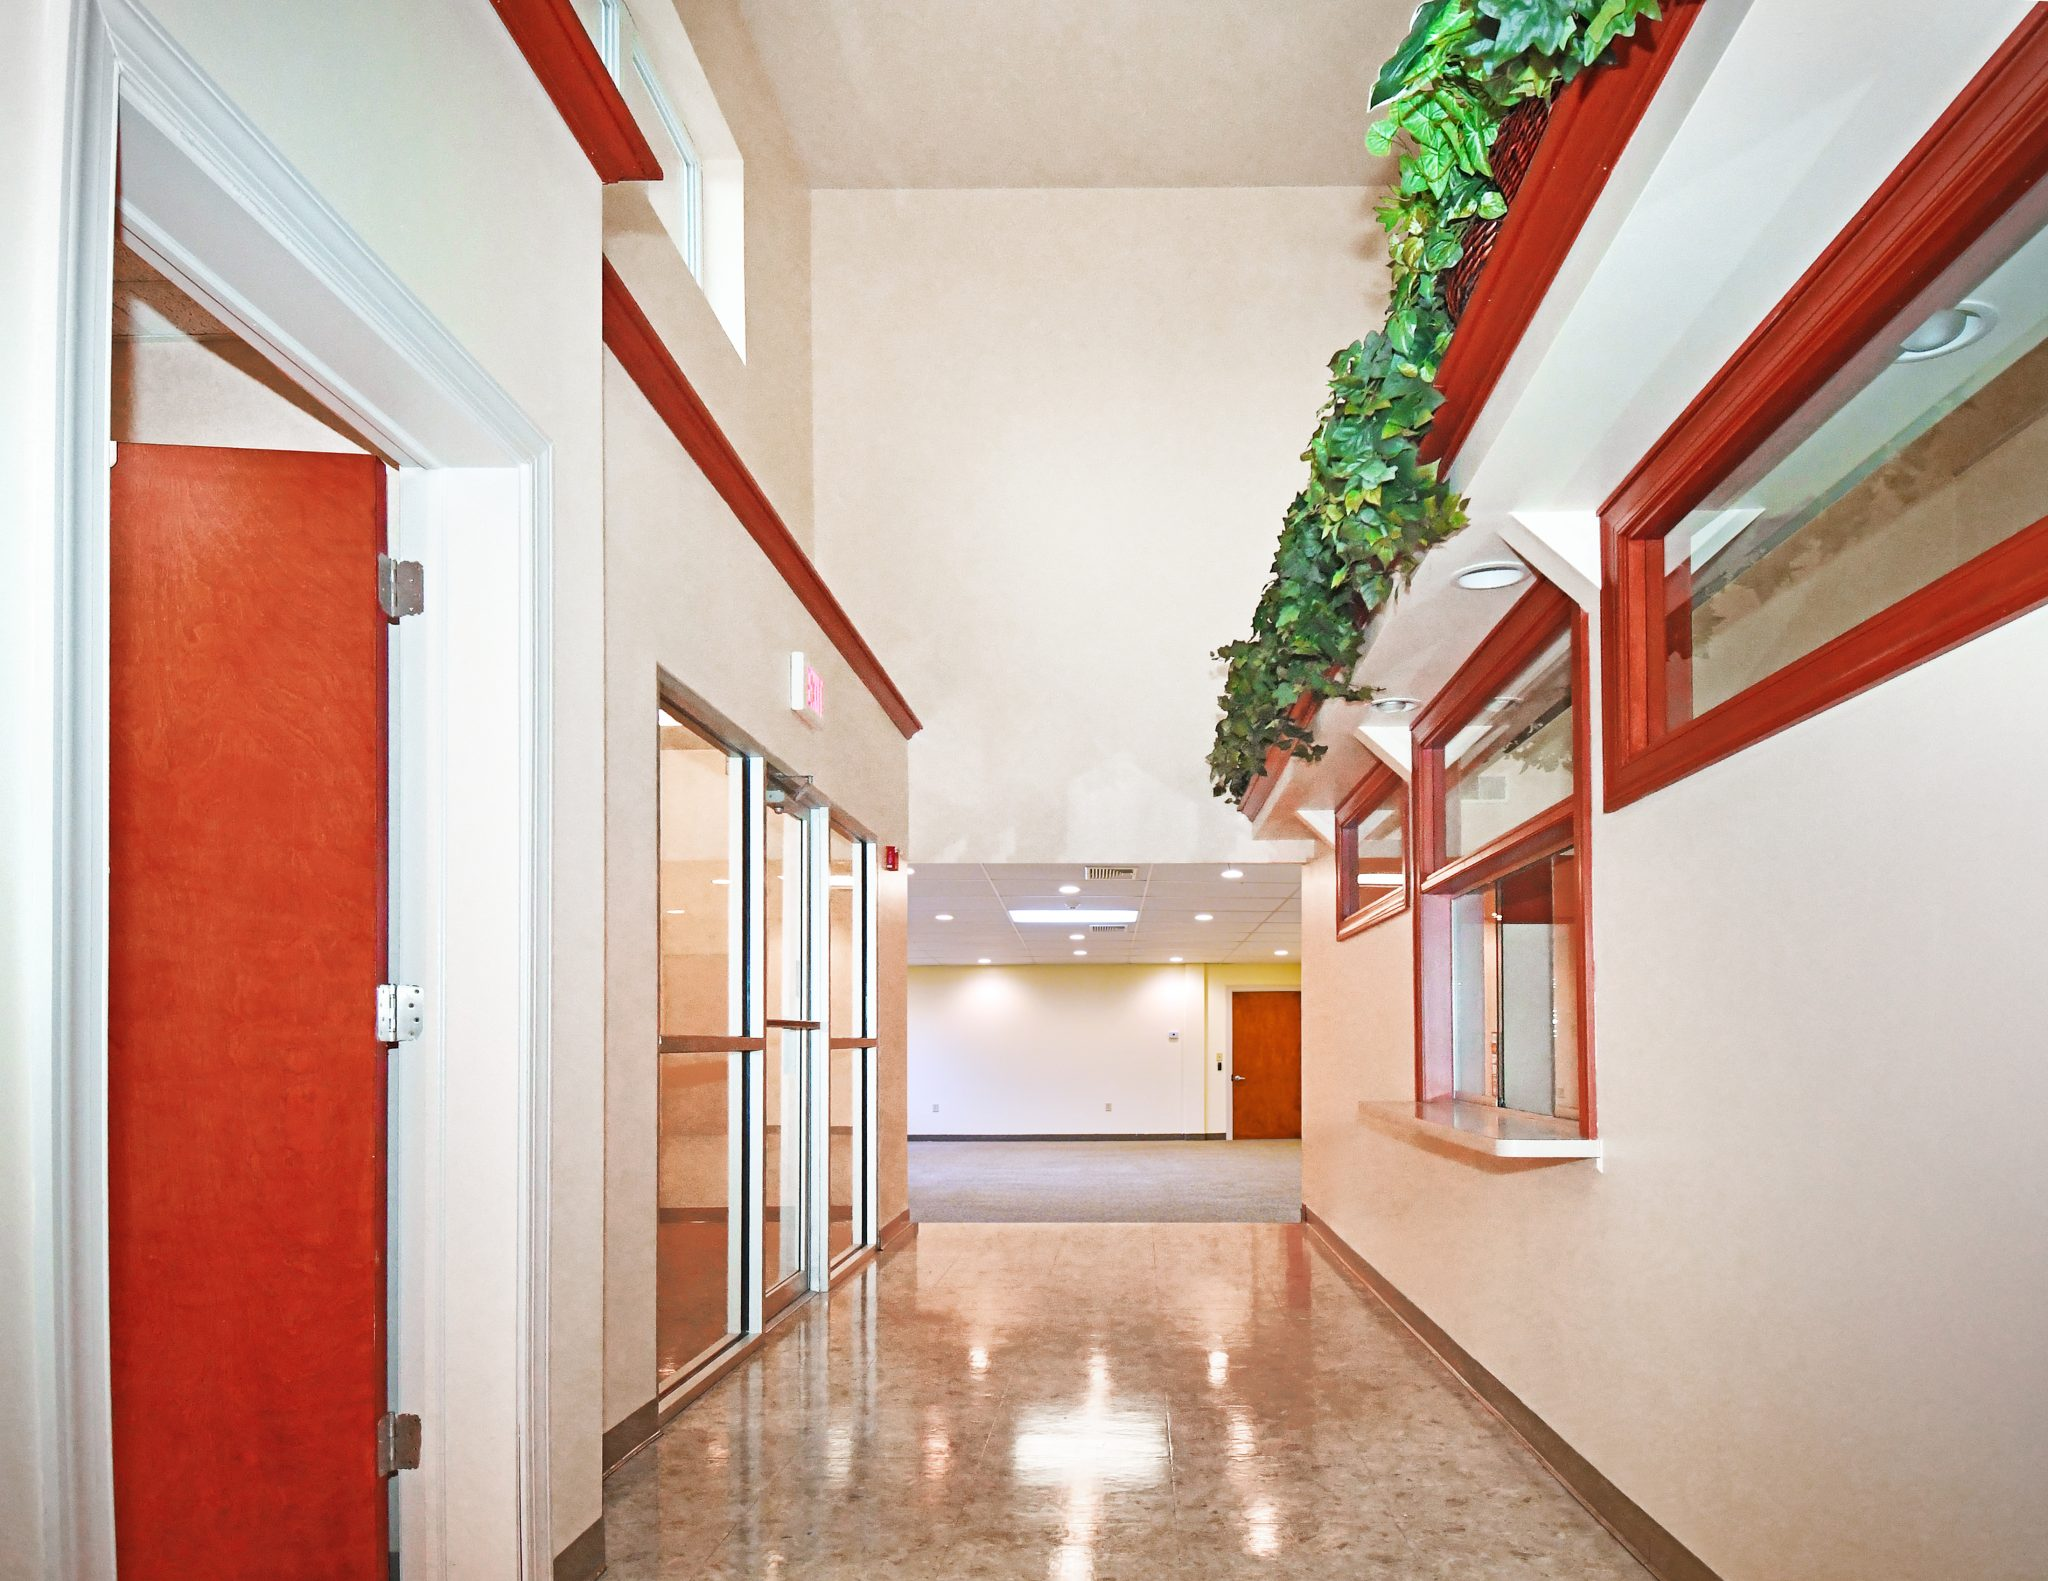 front hallway to medical building with white walls and tile floor and red wood trim with greenery above entrance wall